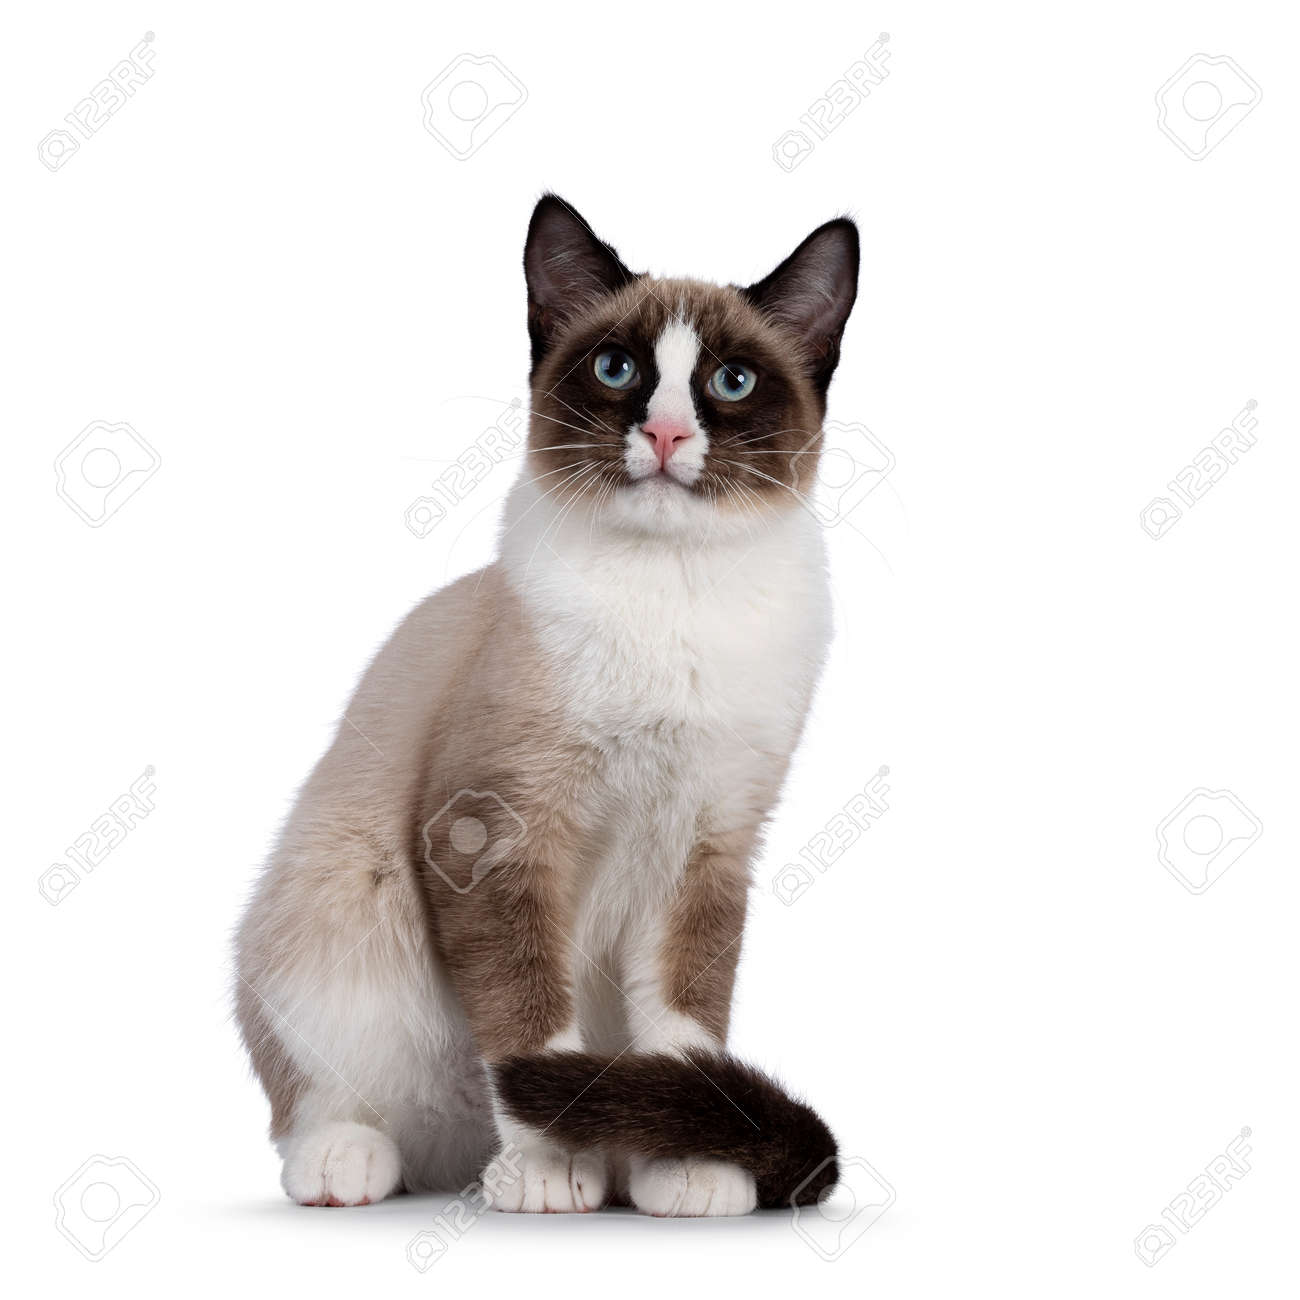 Adorable young Snowshoe cat kitten, sitting up front view. Tail around paws. Looking towards camera with the typical blue eyes. Isolated on a white background. - 173357268